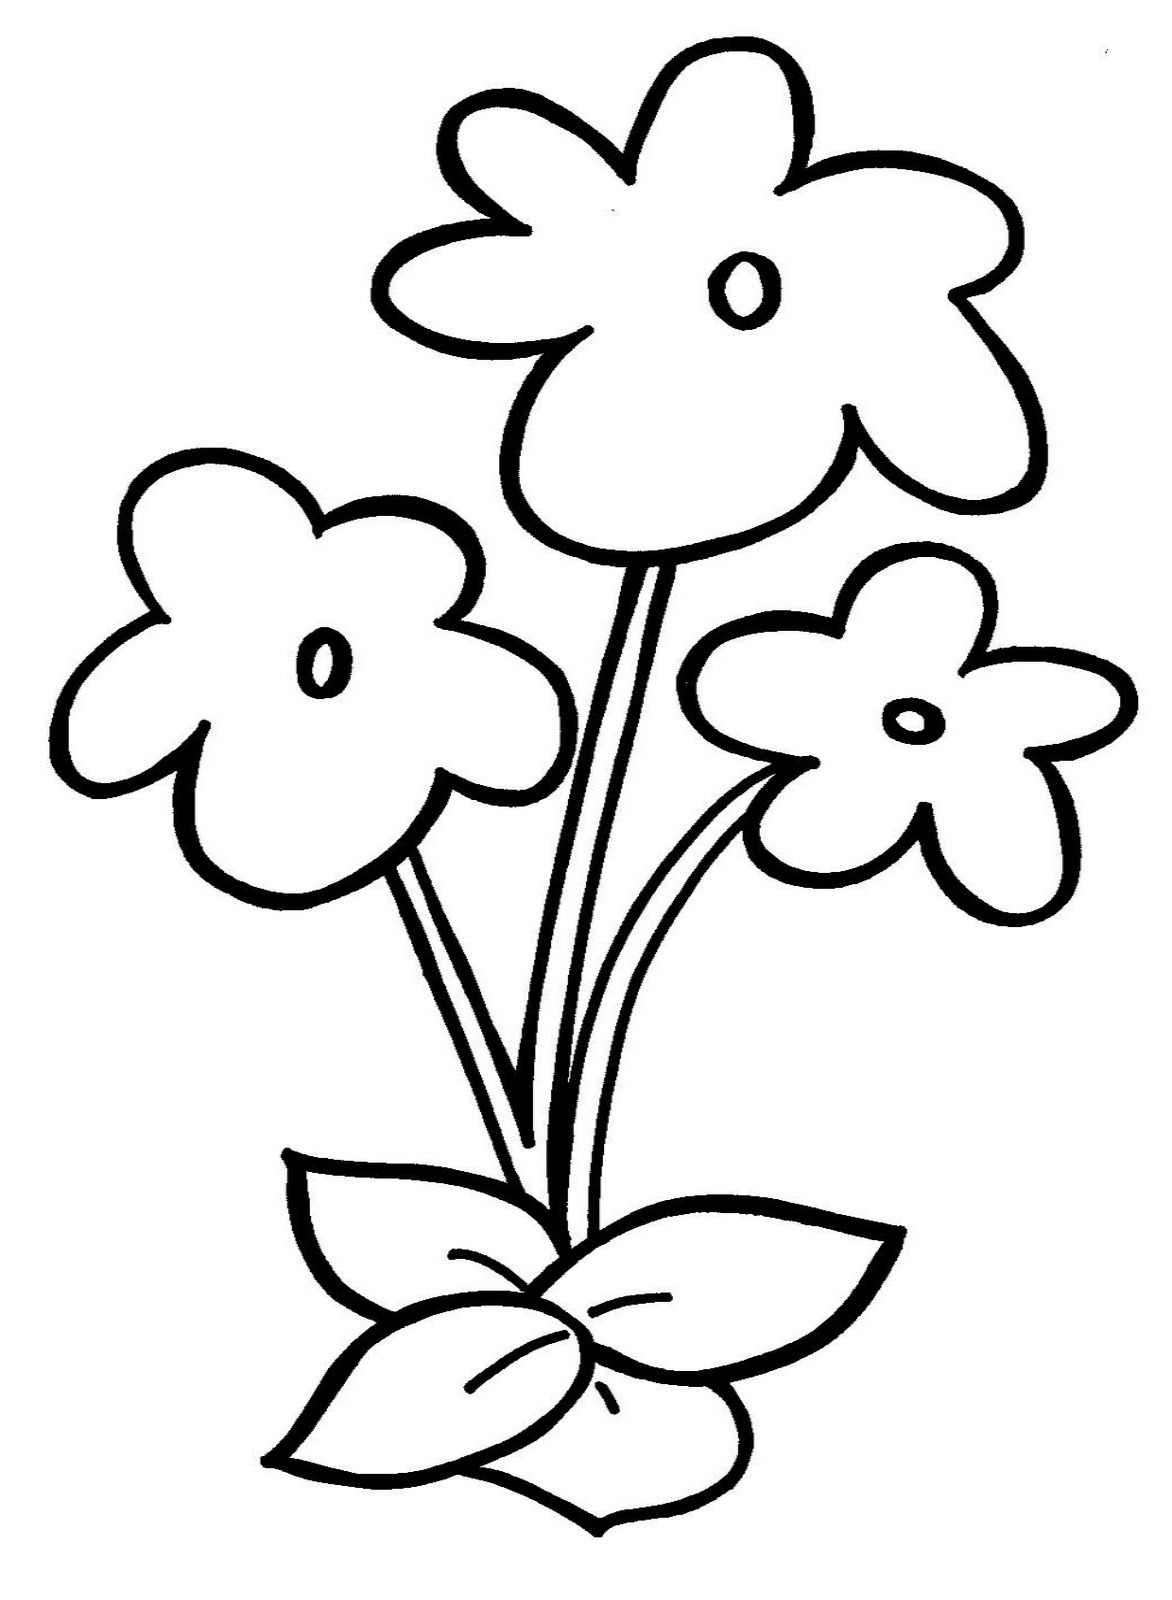 coloring pictures of a flower poppy flowers coloring pages download and print for free flower of a pictures coloring